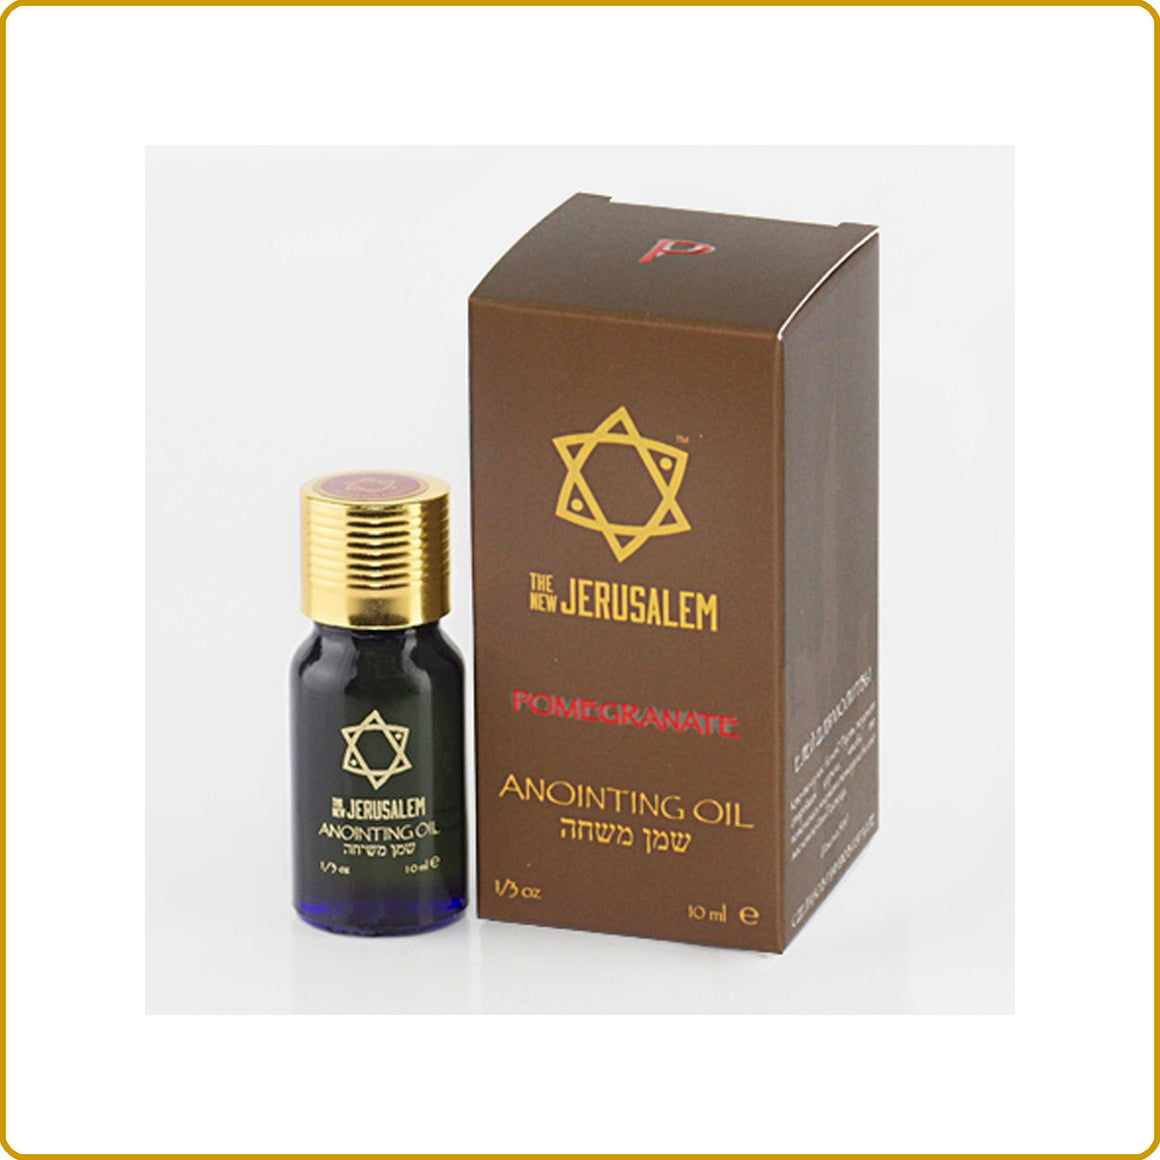 Pomegranate Blessing Oil 10ml.